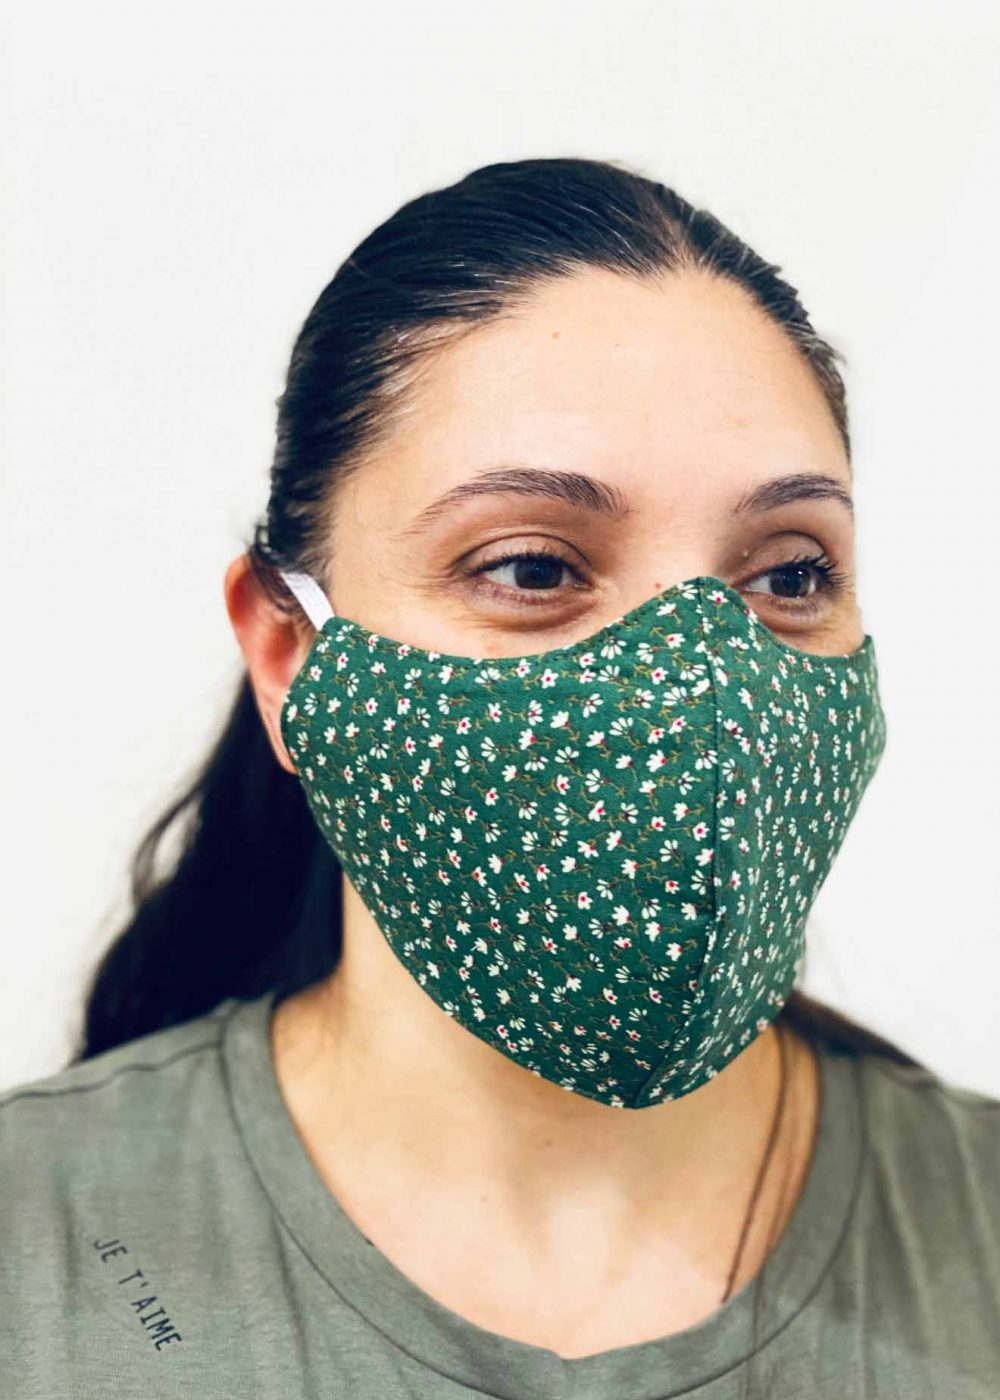 Ladies DHHS Floral Pattern Face Mask by Laundry Box Melbourne